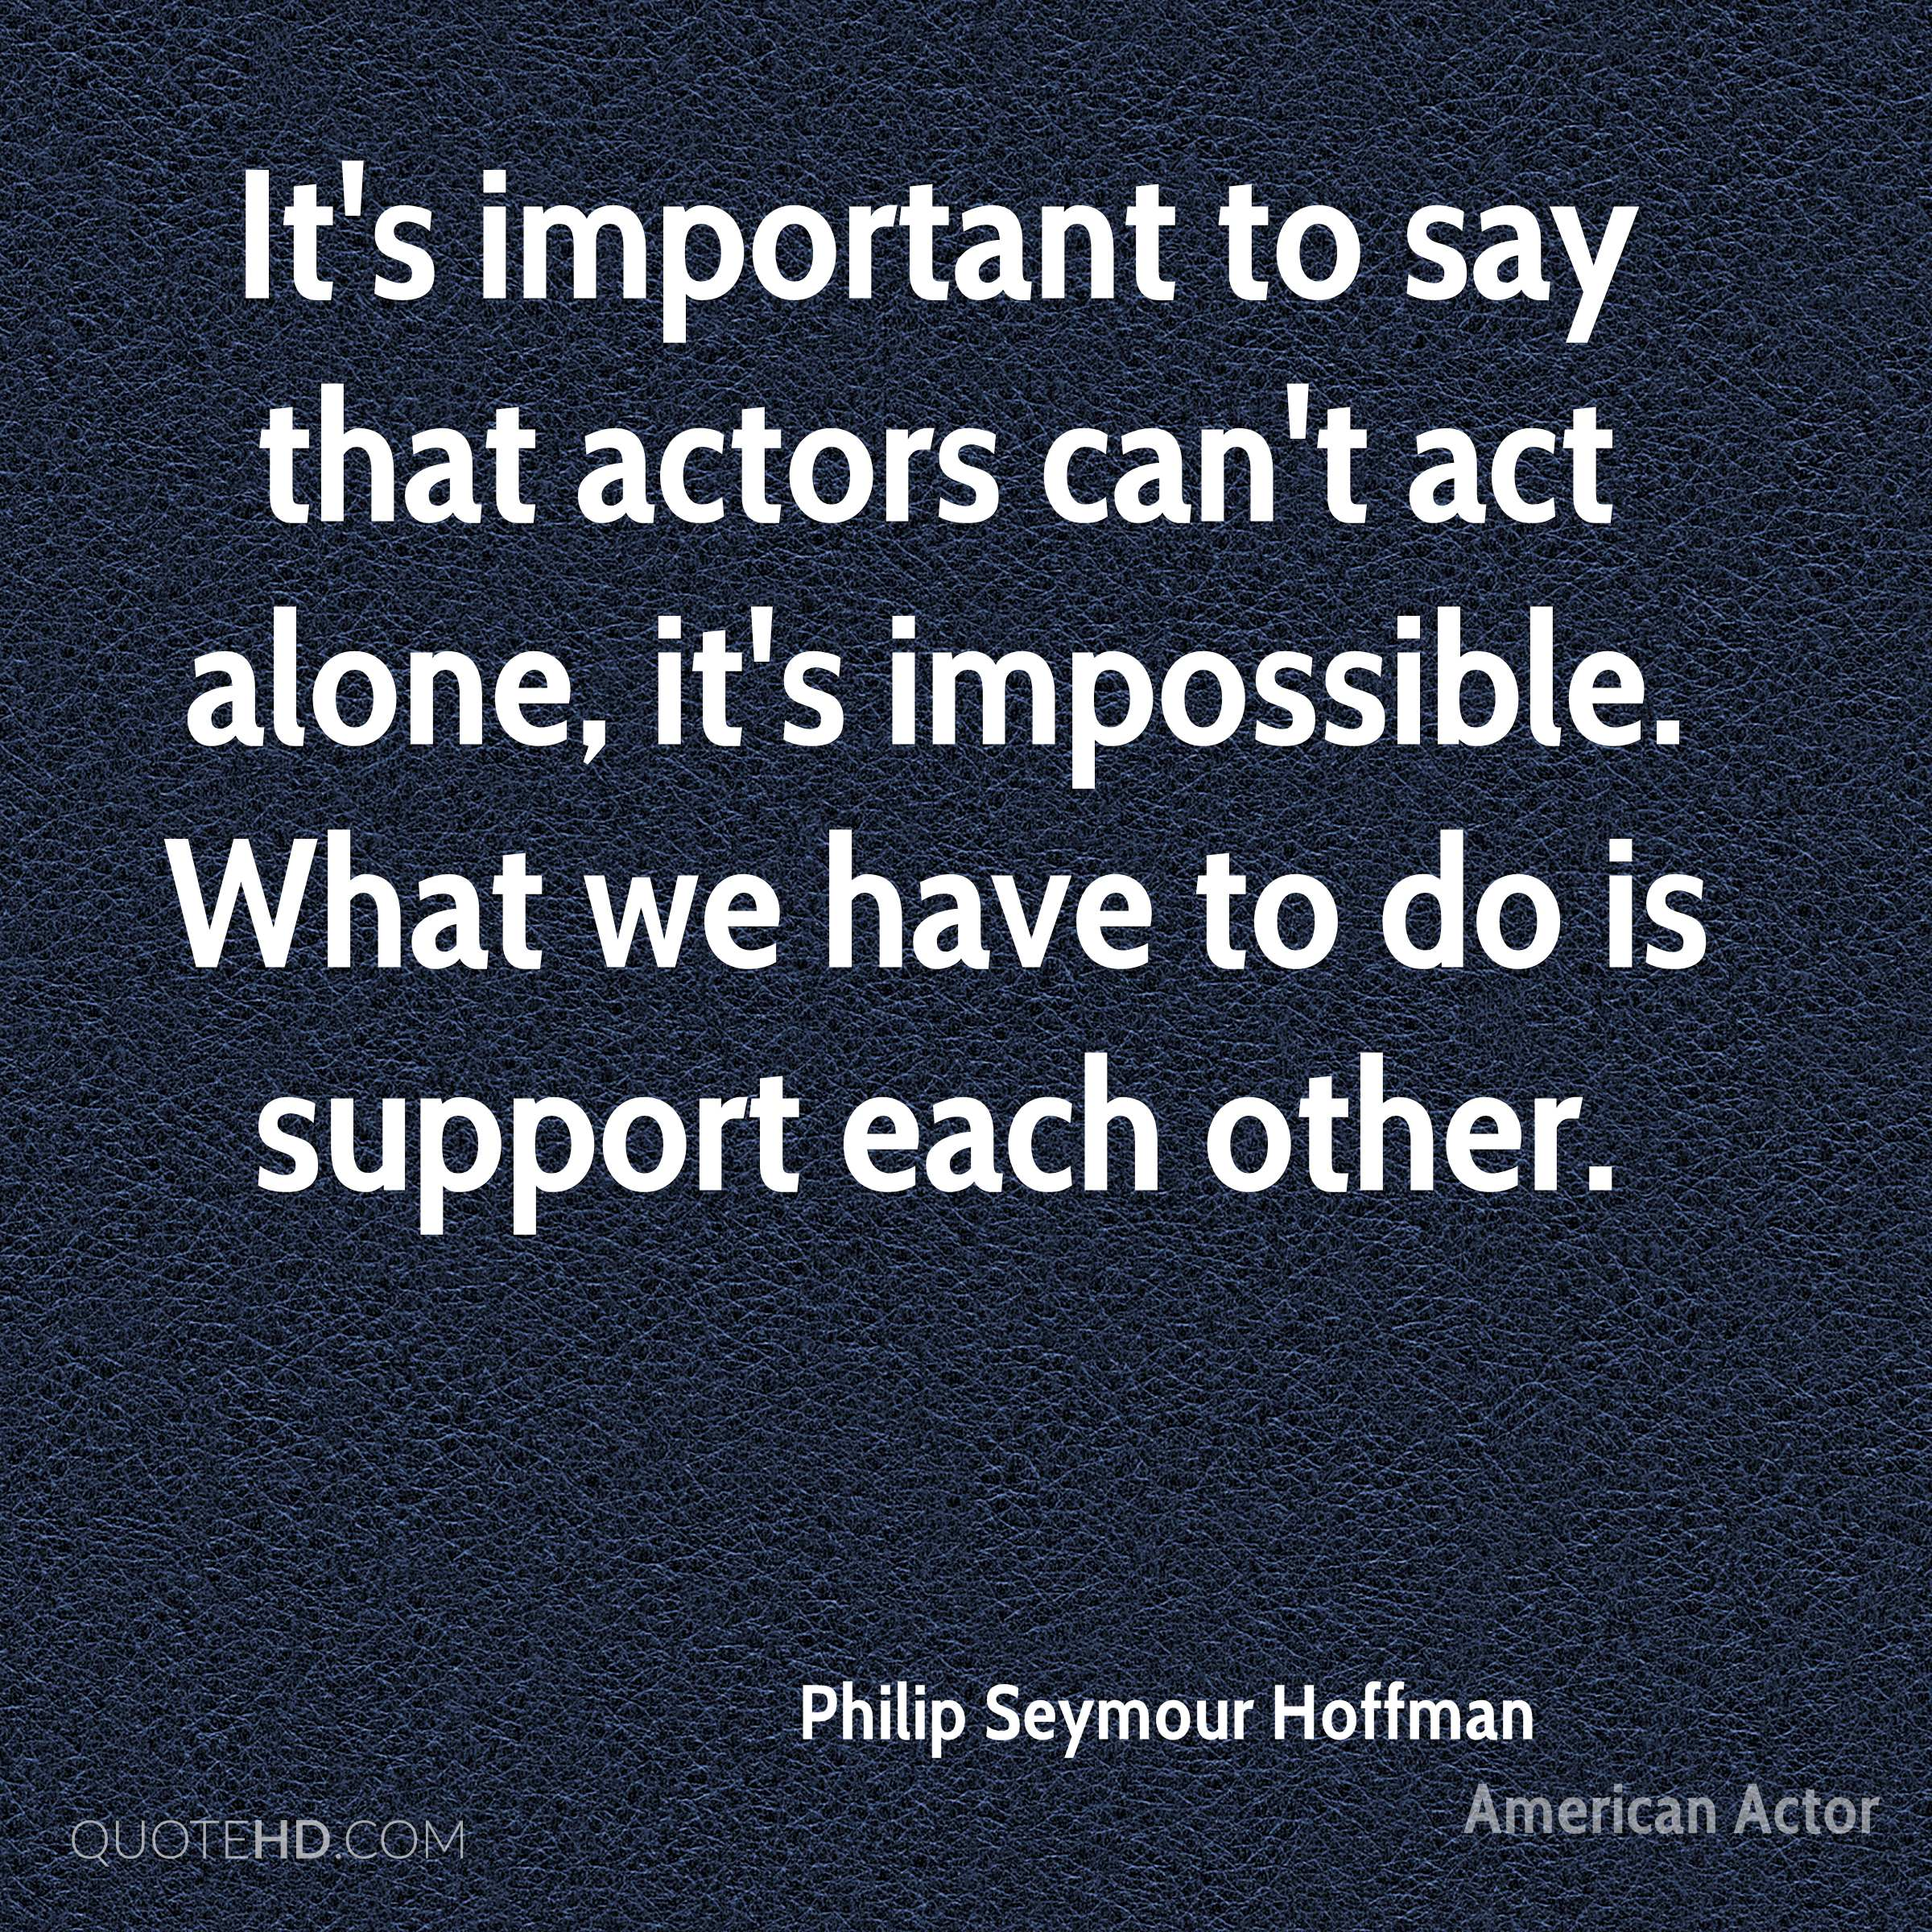 It's important to say that actors can't act alone, it's impossible. What we have to do is support each other.